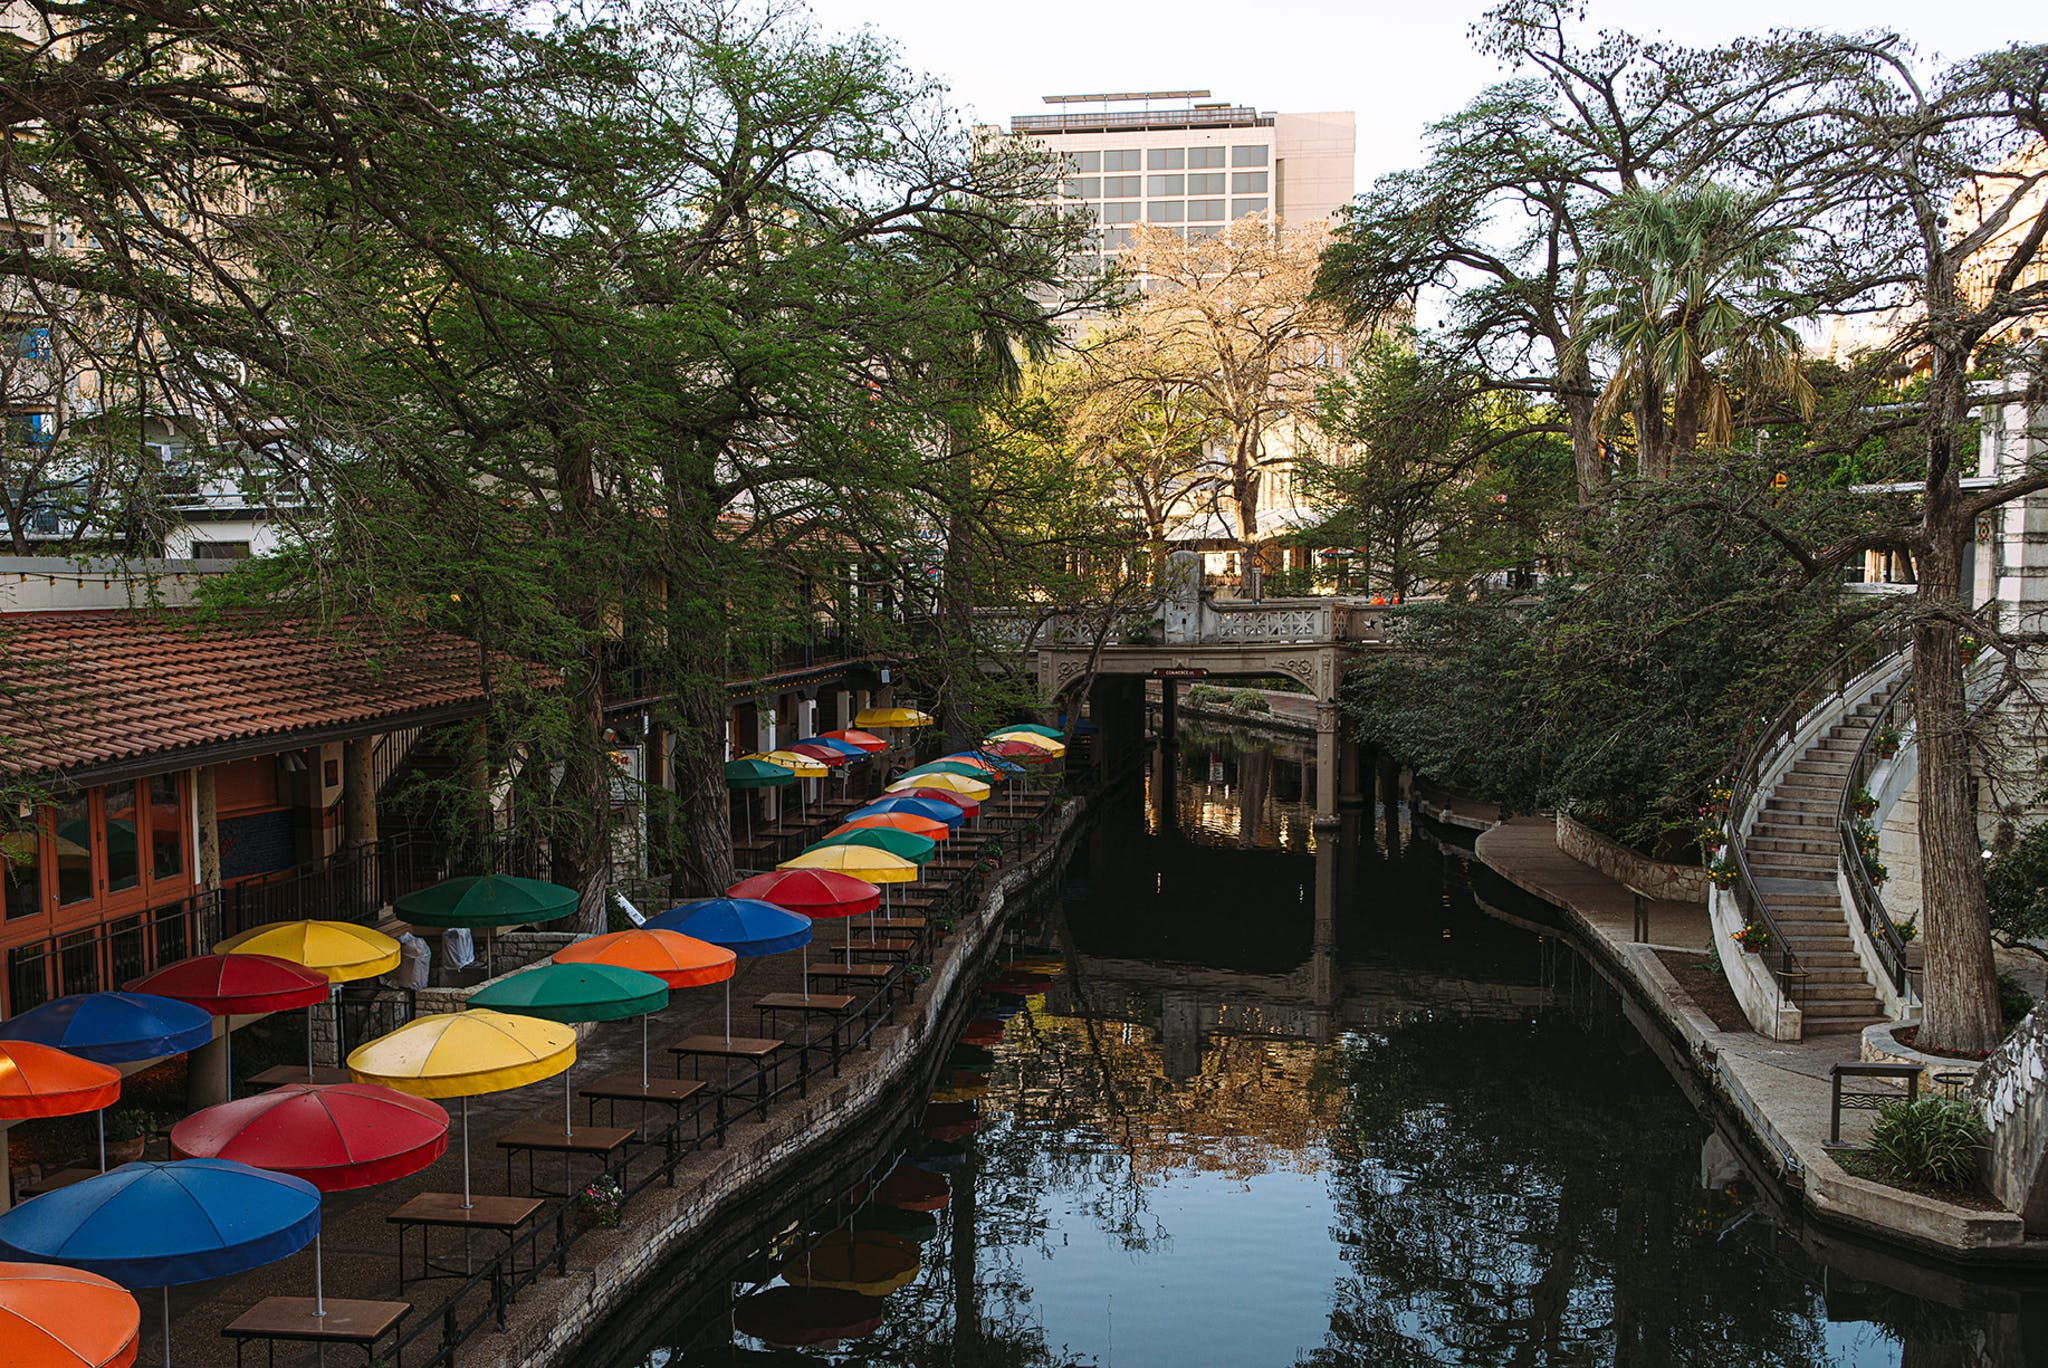 The San Antonio River Walk sits mostly empty, and its waters have begun running unusually clear.